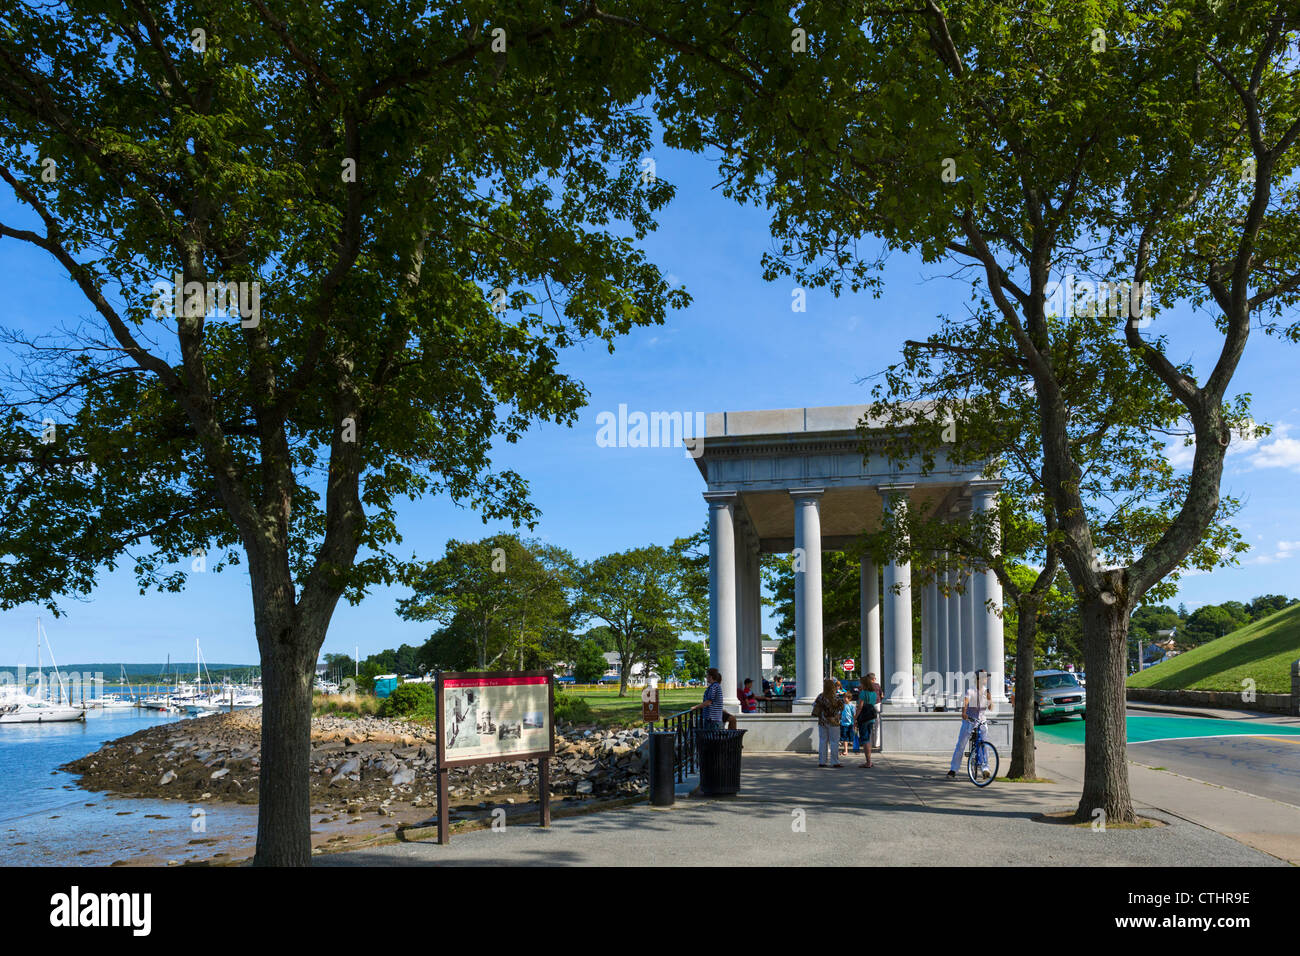 Structure housing the 'Plymouth Rock', Pilgrim Memorial State Park, Plymouth, Massachusetts, USA - Stock Image